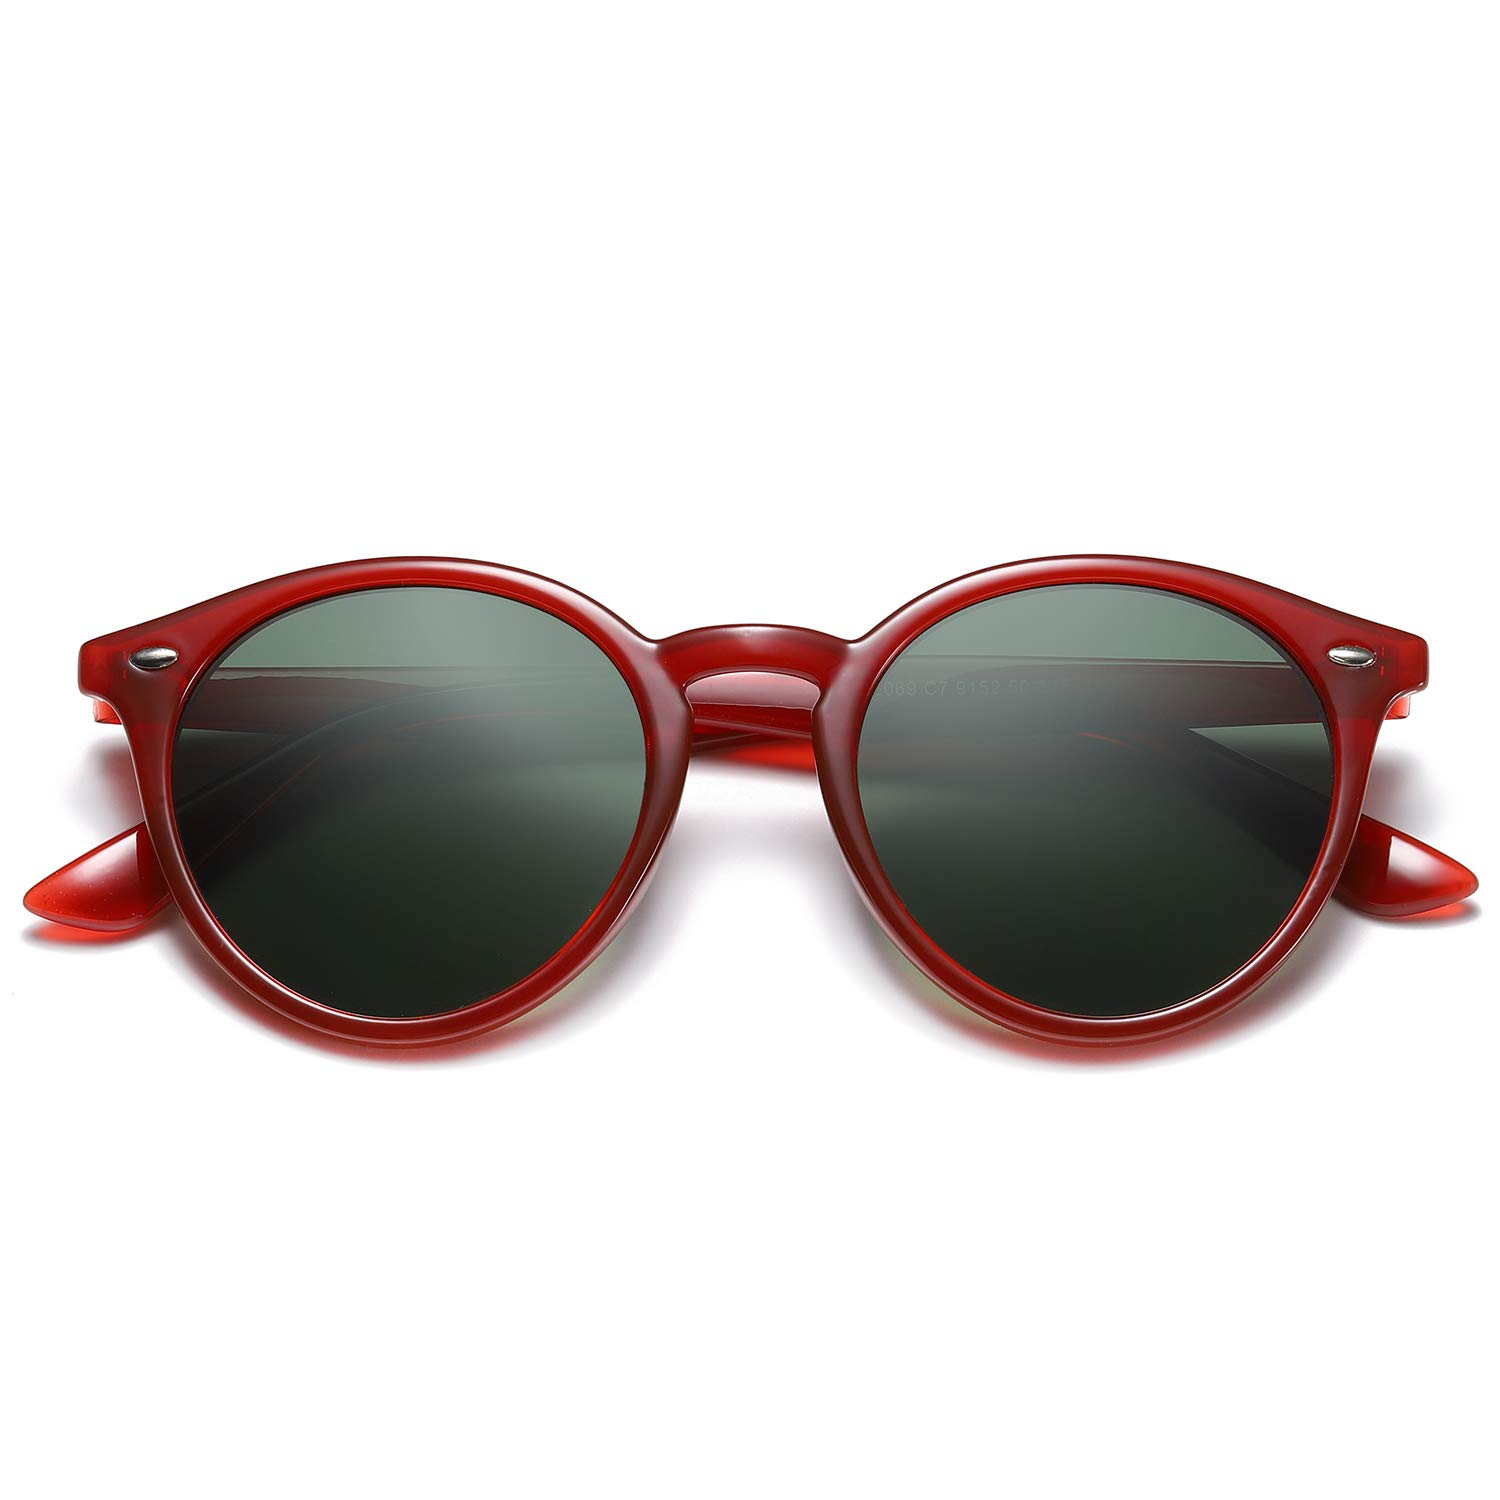 SOJOS Classic Round Polarized Sunglasses with Rivets UV400 Mirrored Lens SJ2069 with Crystal Red Frame/G15 Lens with Rivets by SOJOS